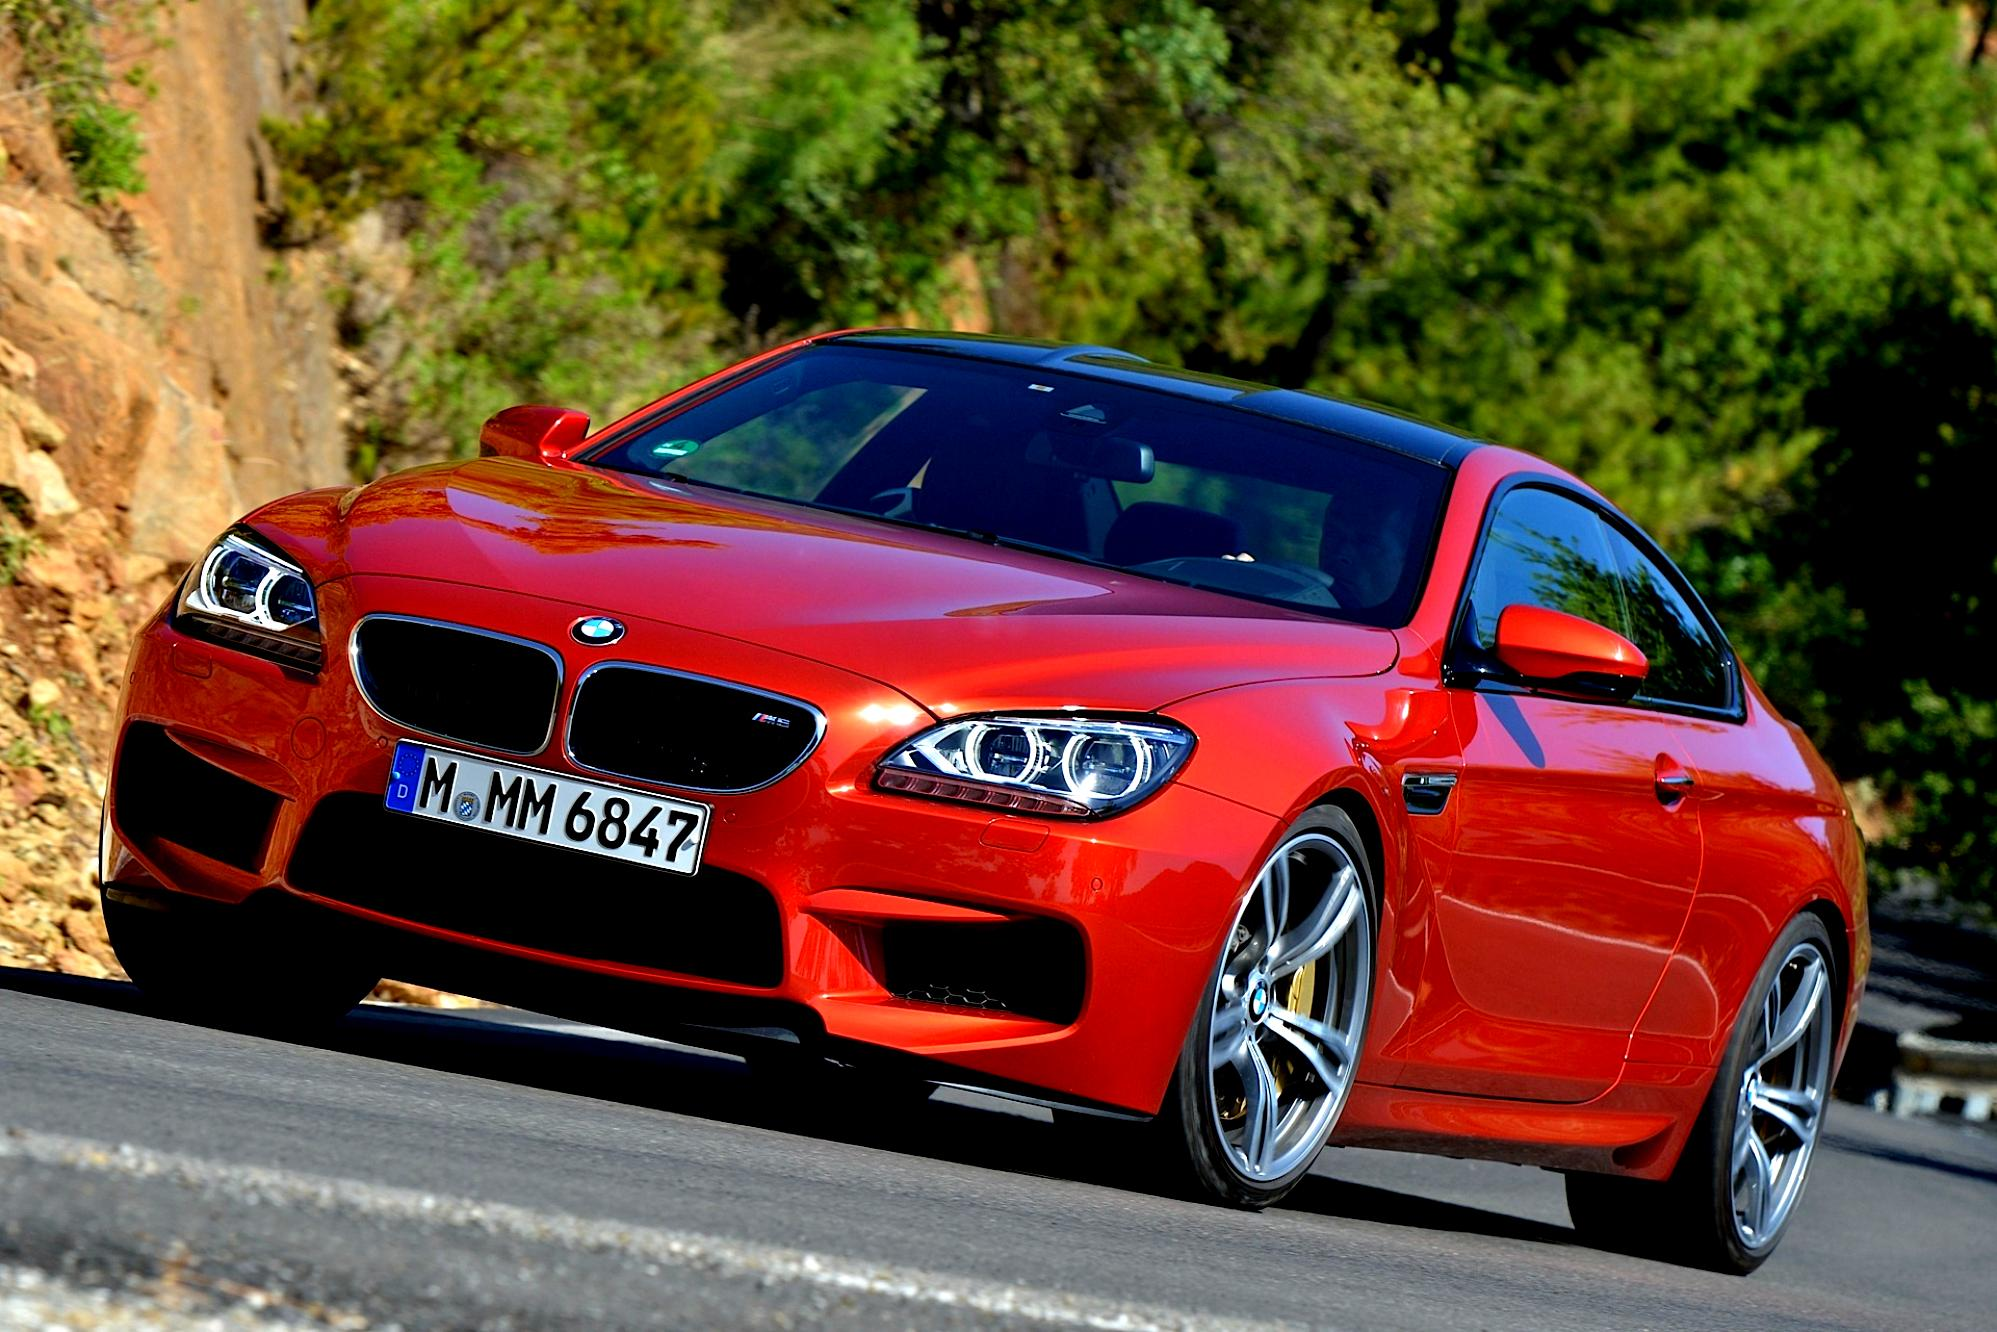 BMW M6 Coupe F13 2012 #67